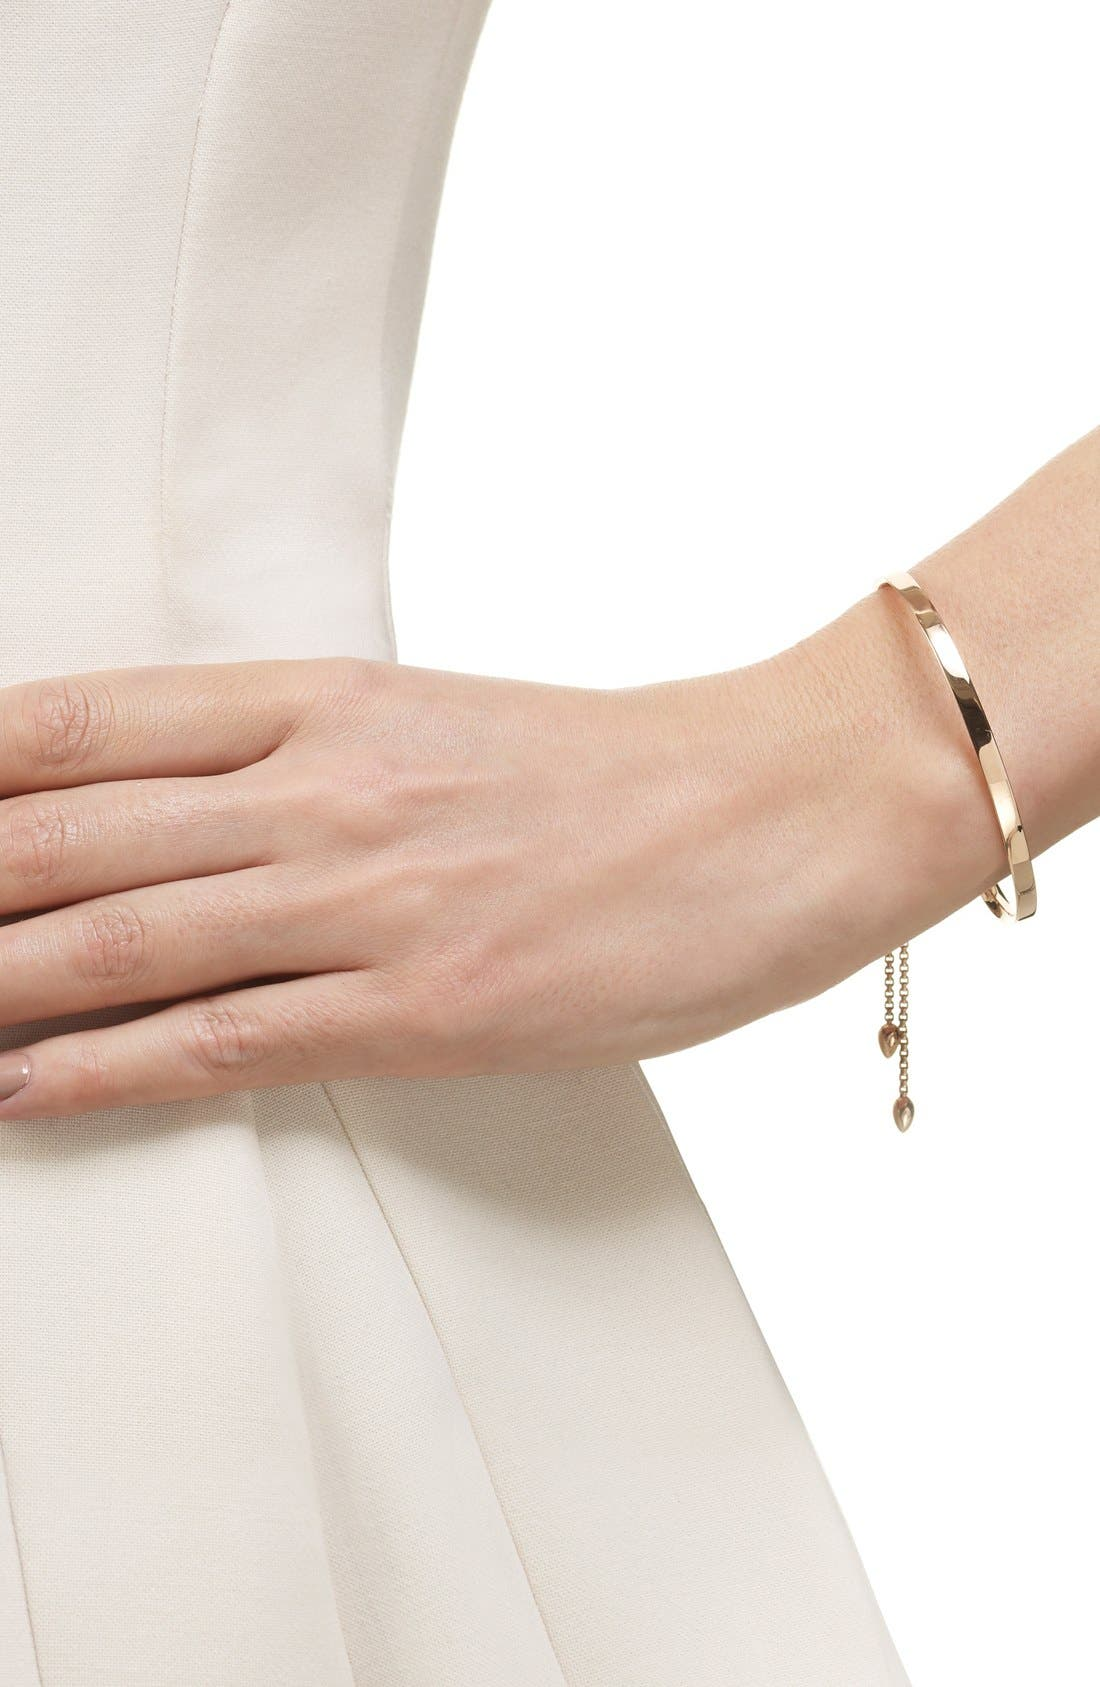 MONICA VINADER, Fiji Chain Bracelet, Alternate thumbnail 2, color, ROSE GOLD